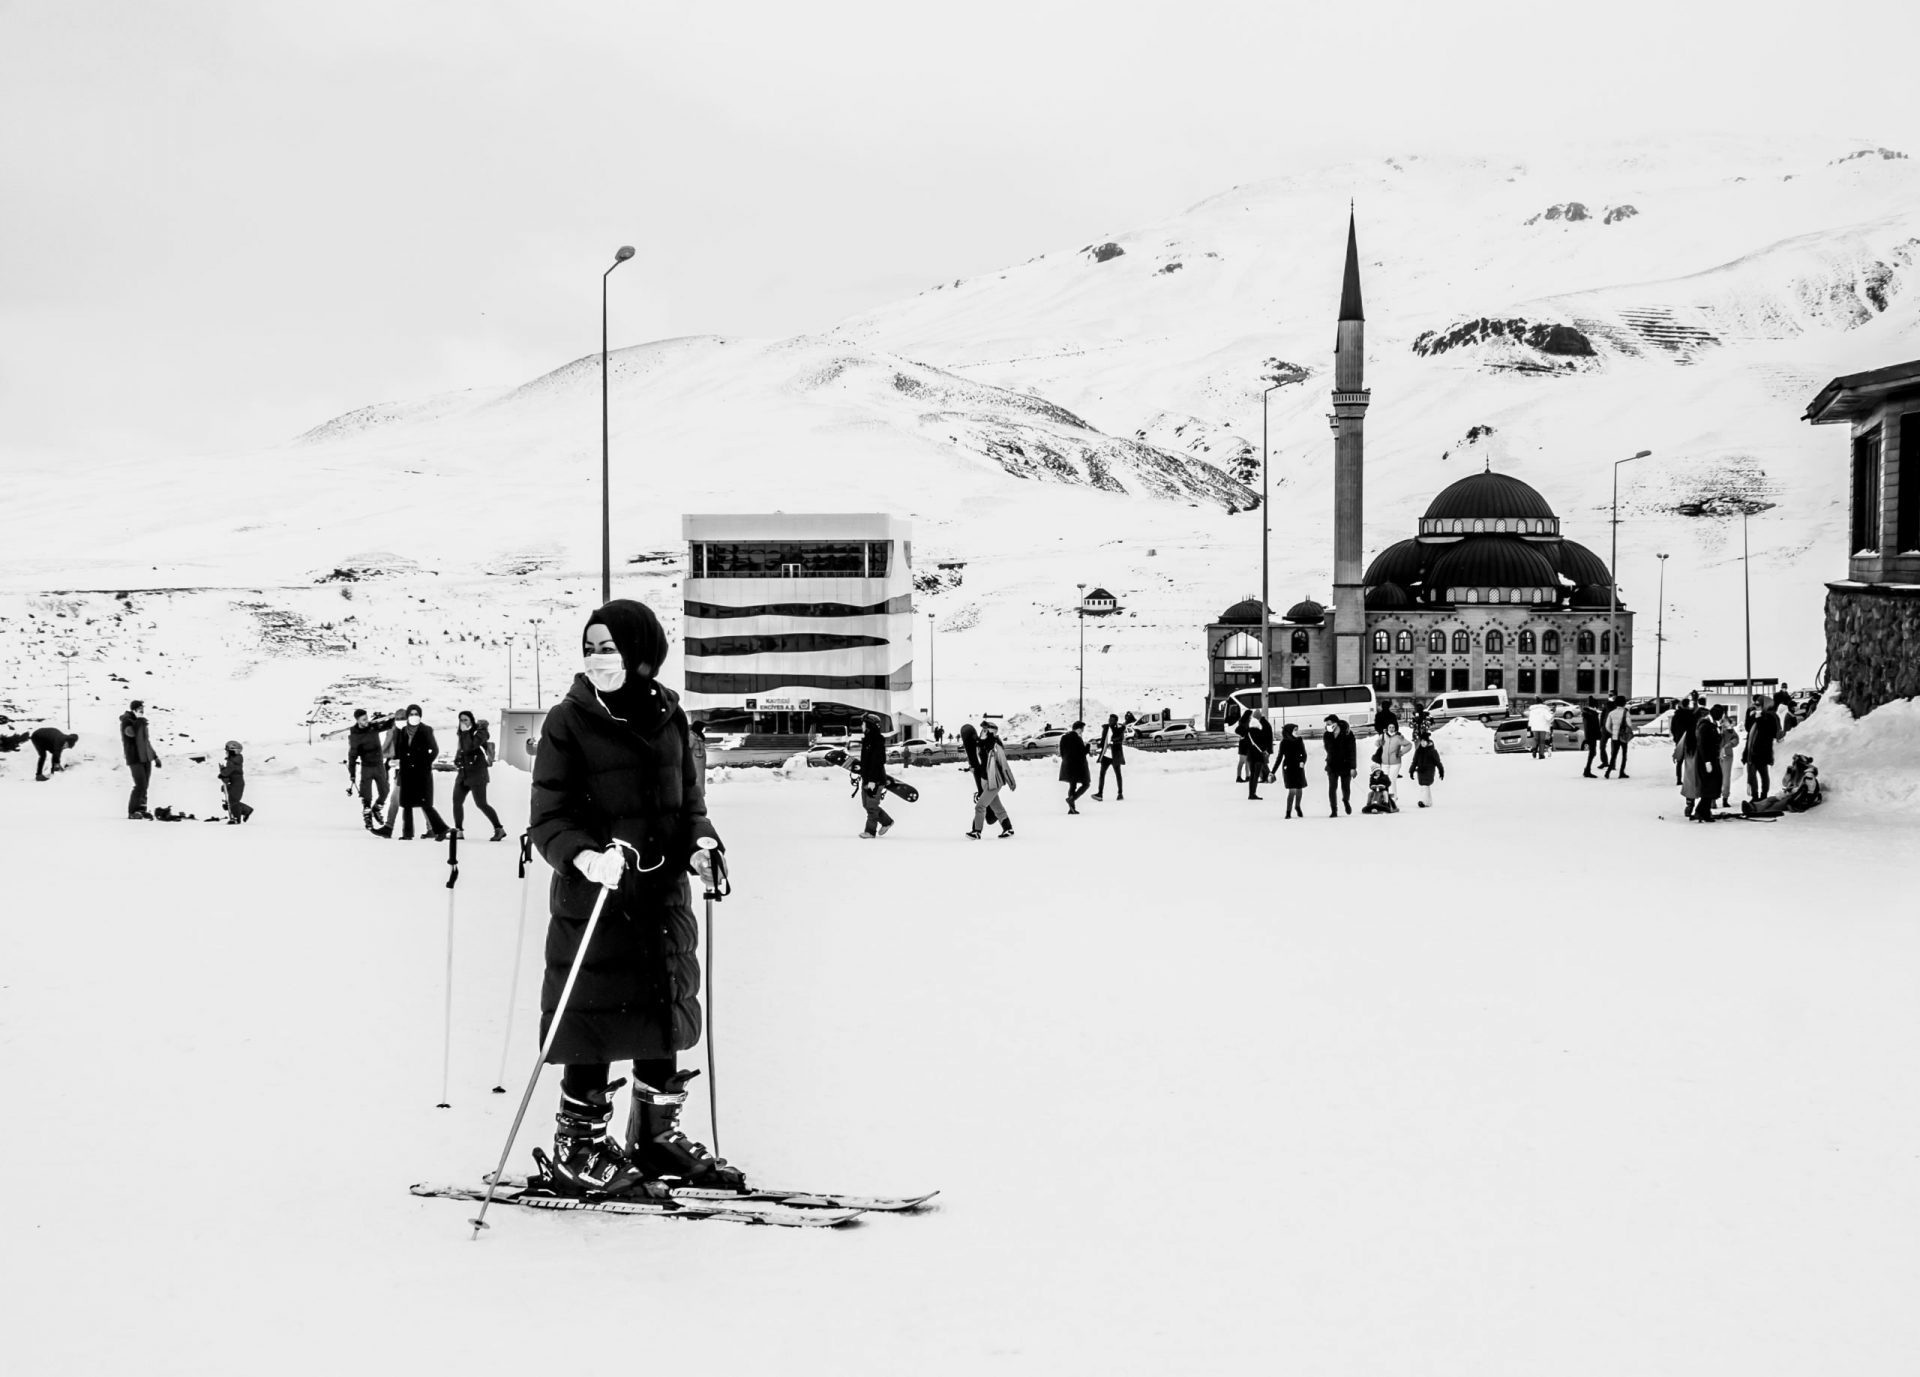 10 Common Travel Photography Mistakes - Muslim woman skiing in Erciyes, Turkey